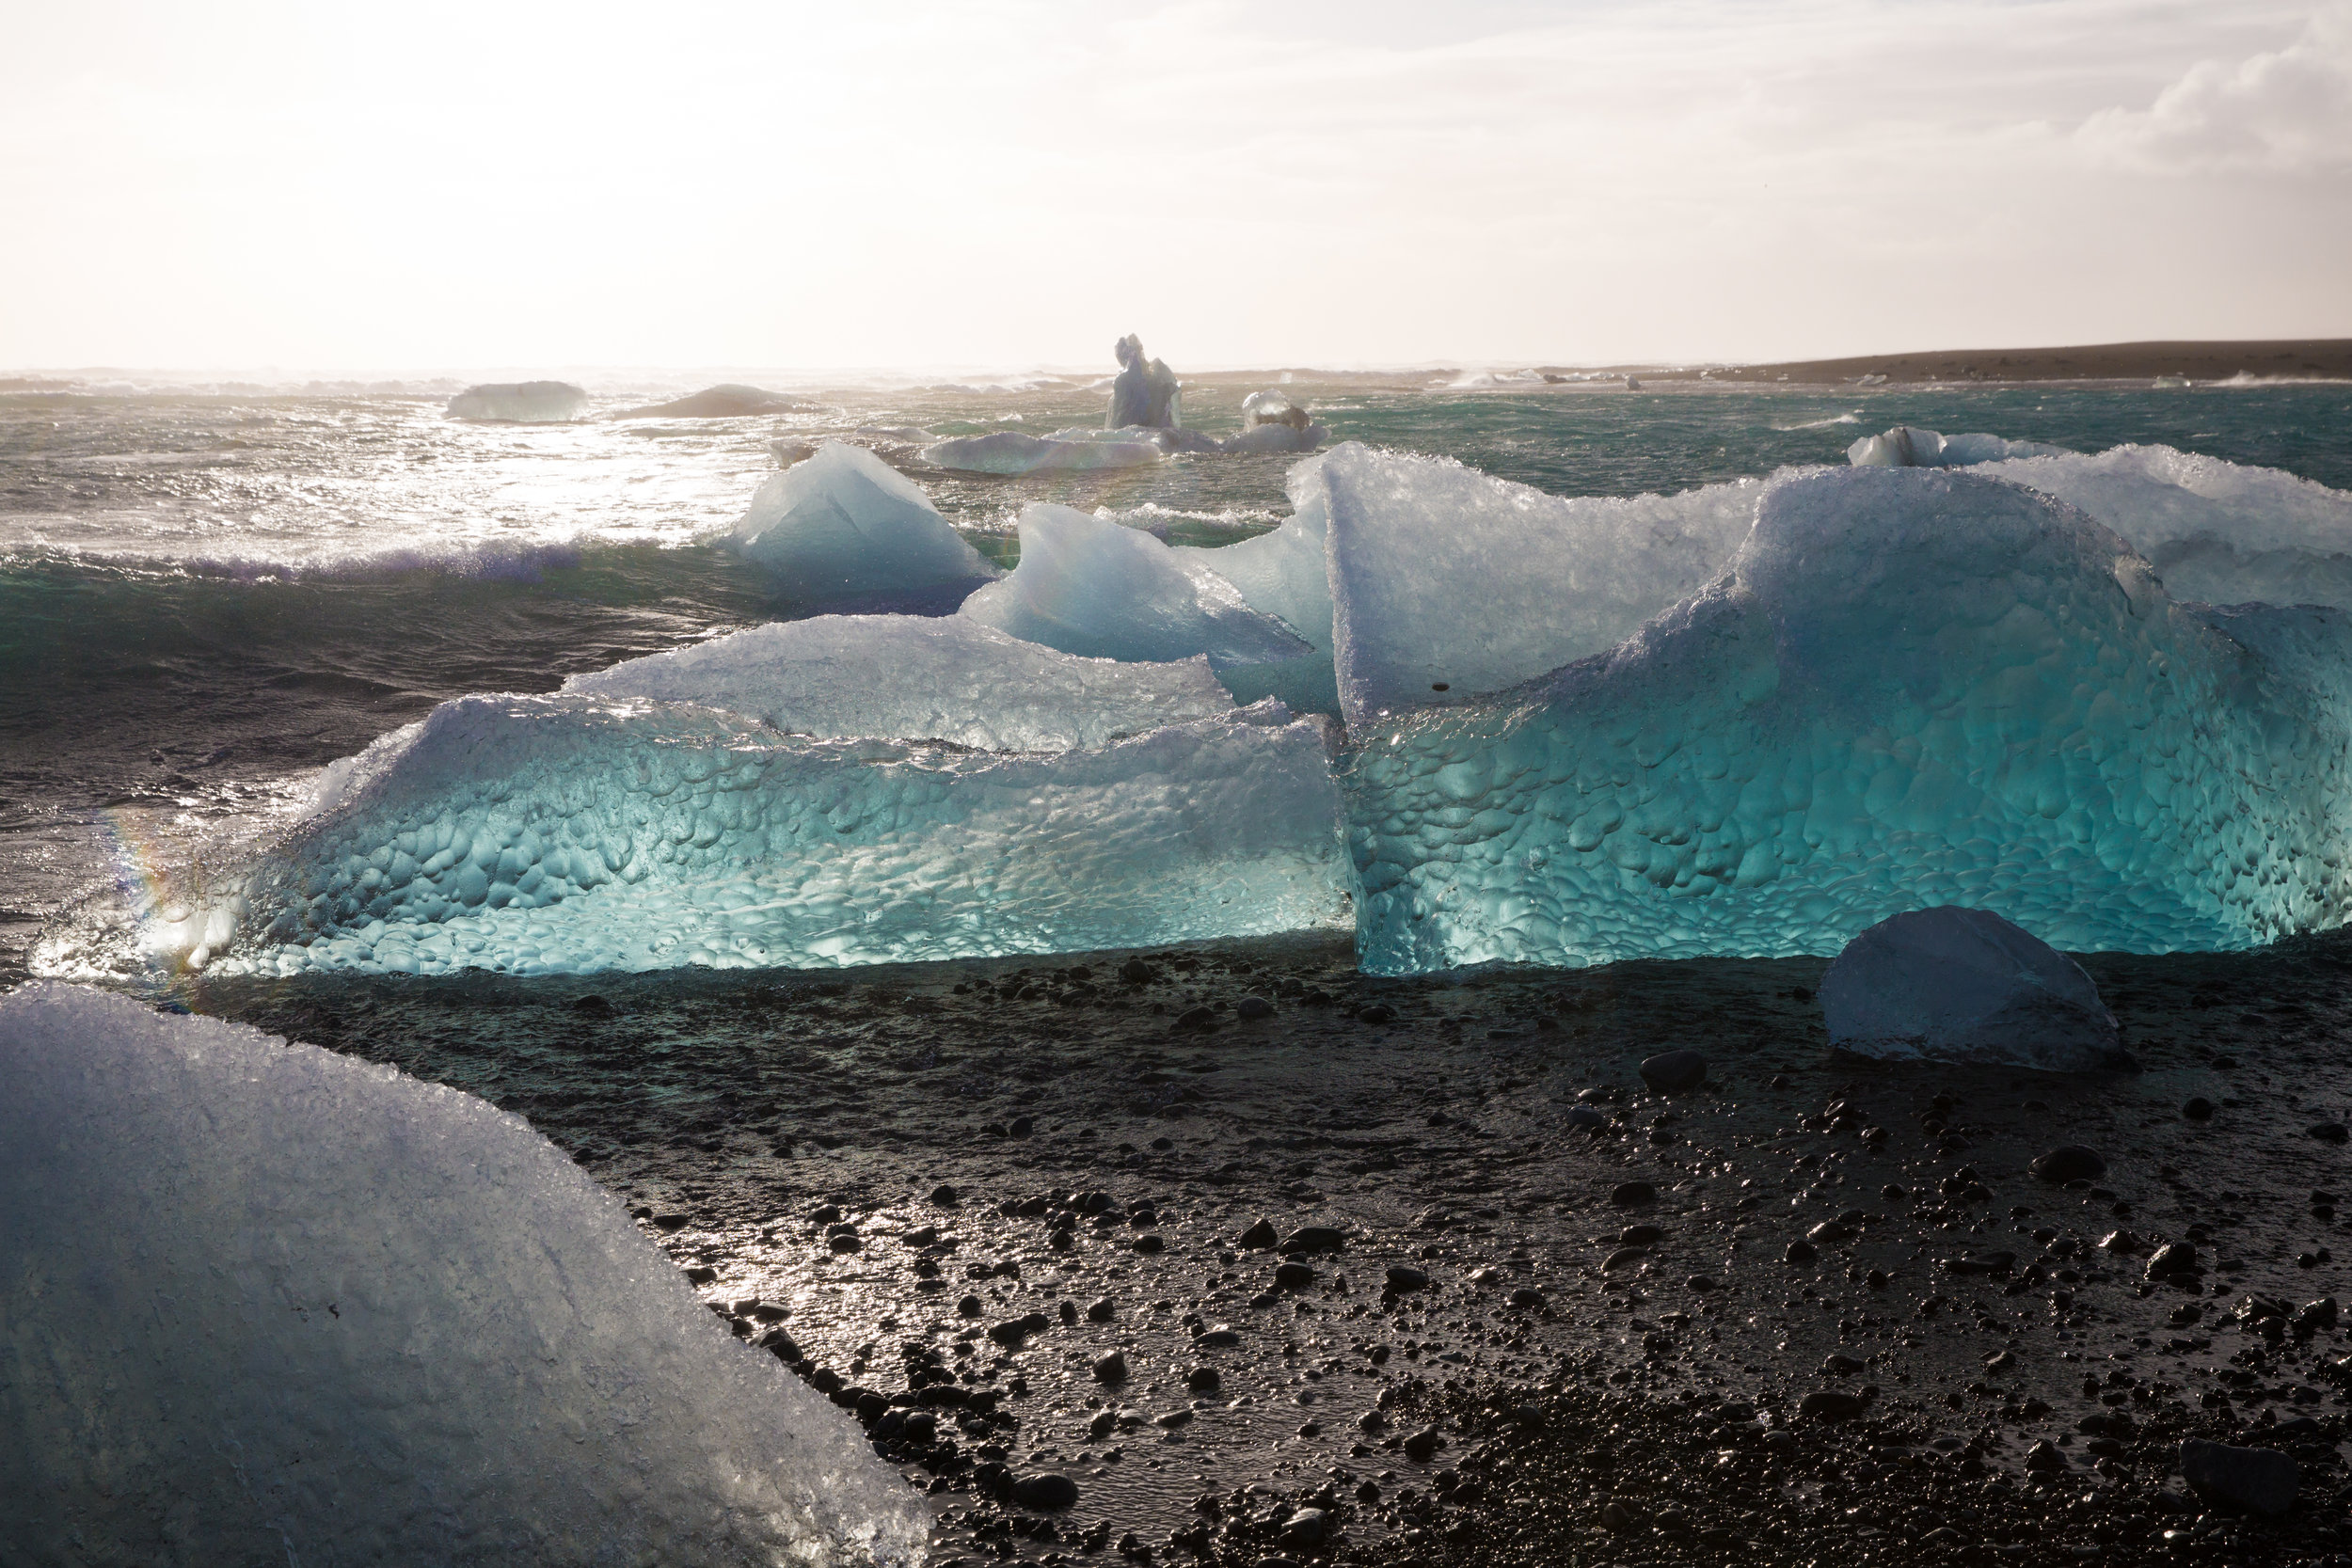 It's hard to explain the surreal feeling of watching pieces of glacier floating out to sea, and crashing on the waves of a black sand beach. Watching the blue bubbles frozen under the service look like something lives within. Science fiction lovers will be fascinated here.